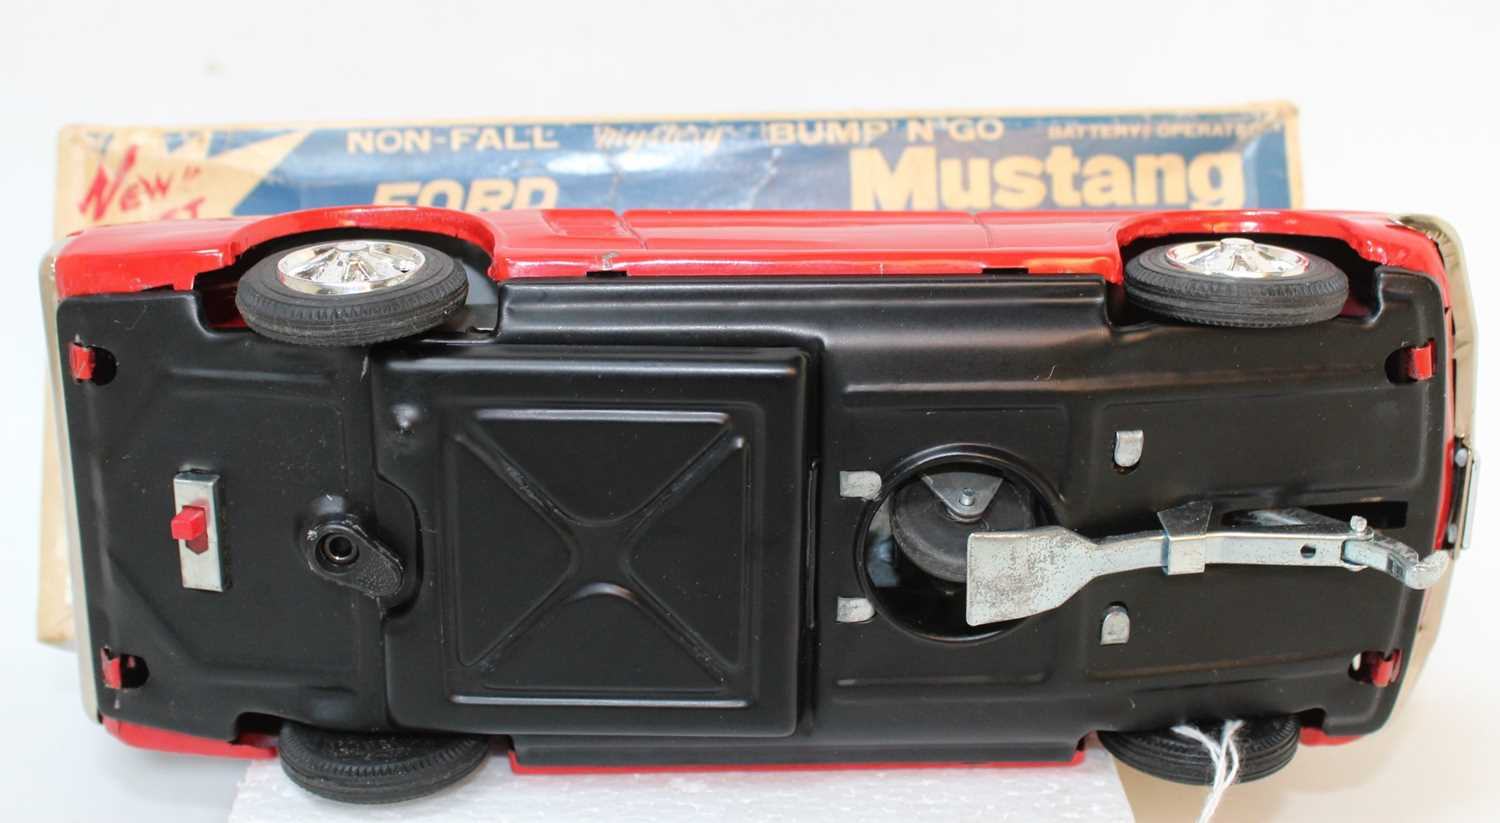 Taiyo Tinplate battery powered Ford Mustang (red) tiny rub mark to roof, very near mint in box. ( - Image 3 of 3